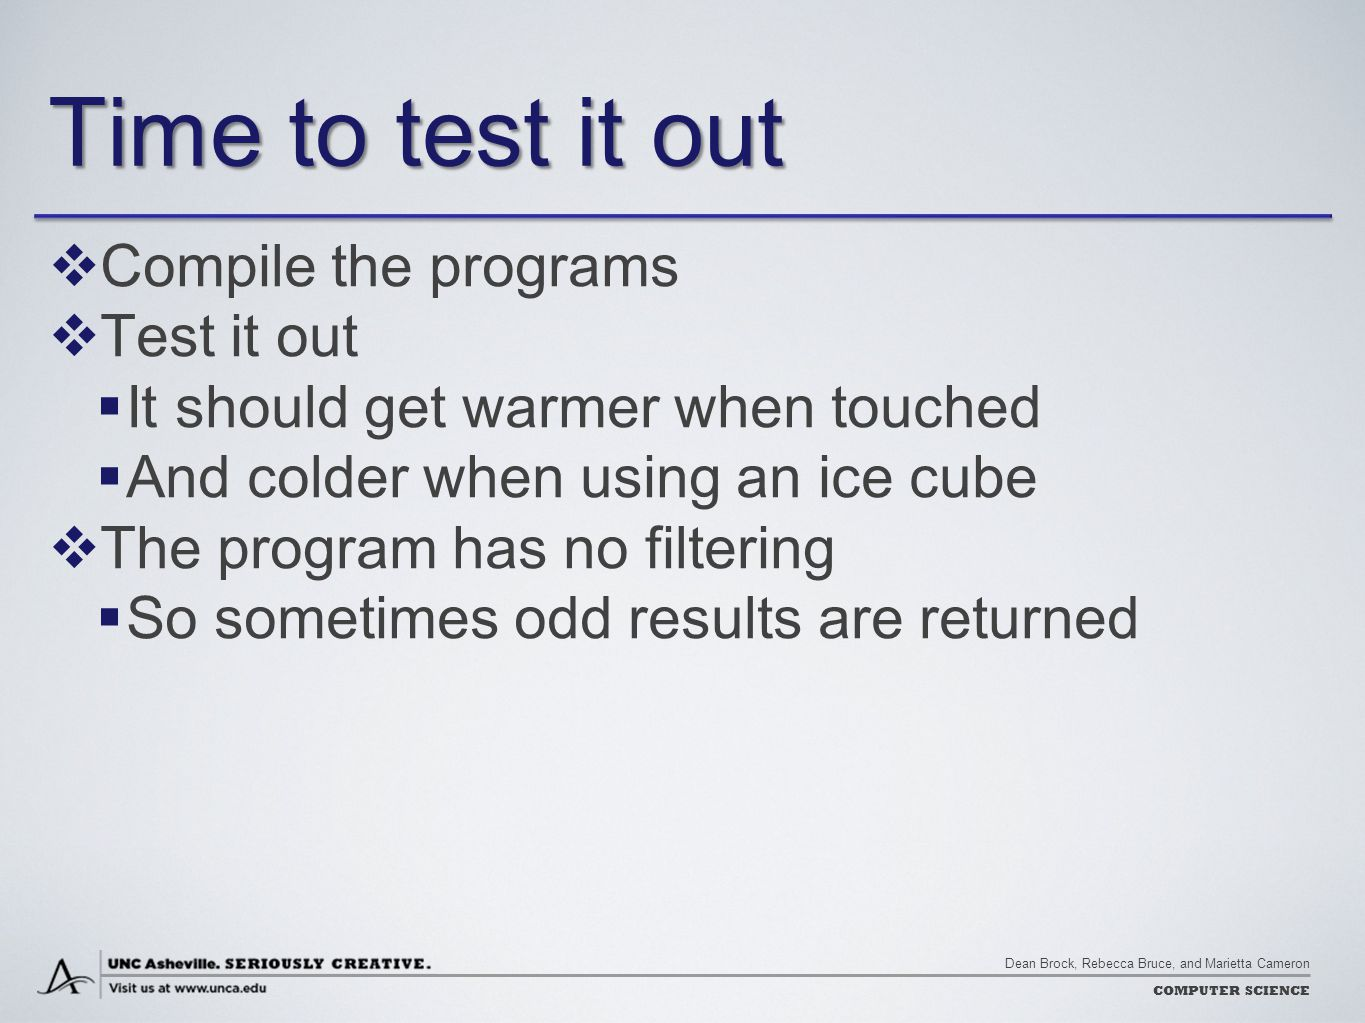 Dean Brock, Rebecca Bruce, and Marietta Cameron COMPUTER SCIENCE Time to test it out  Compile the programs  Test it out  It should get warmer when touched  And colder when using an ice cube  The program has no filtering  So sometimes odd results are returned